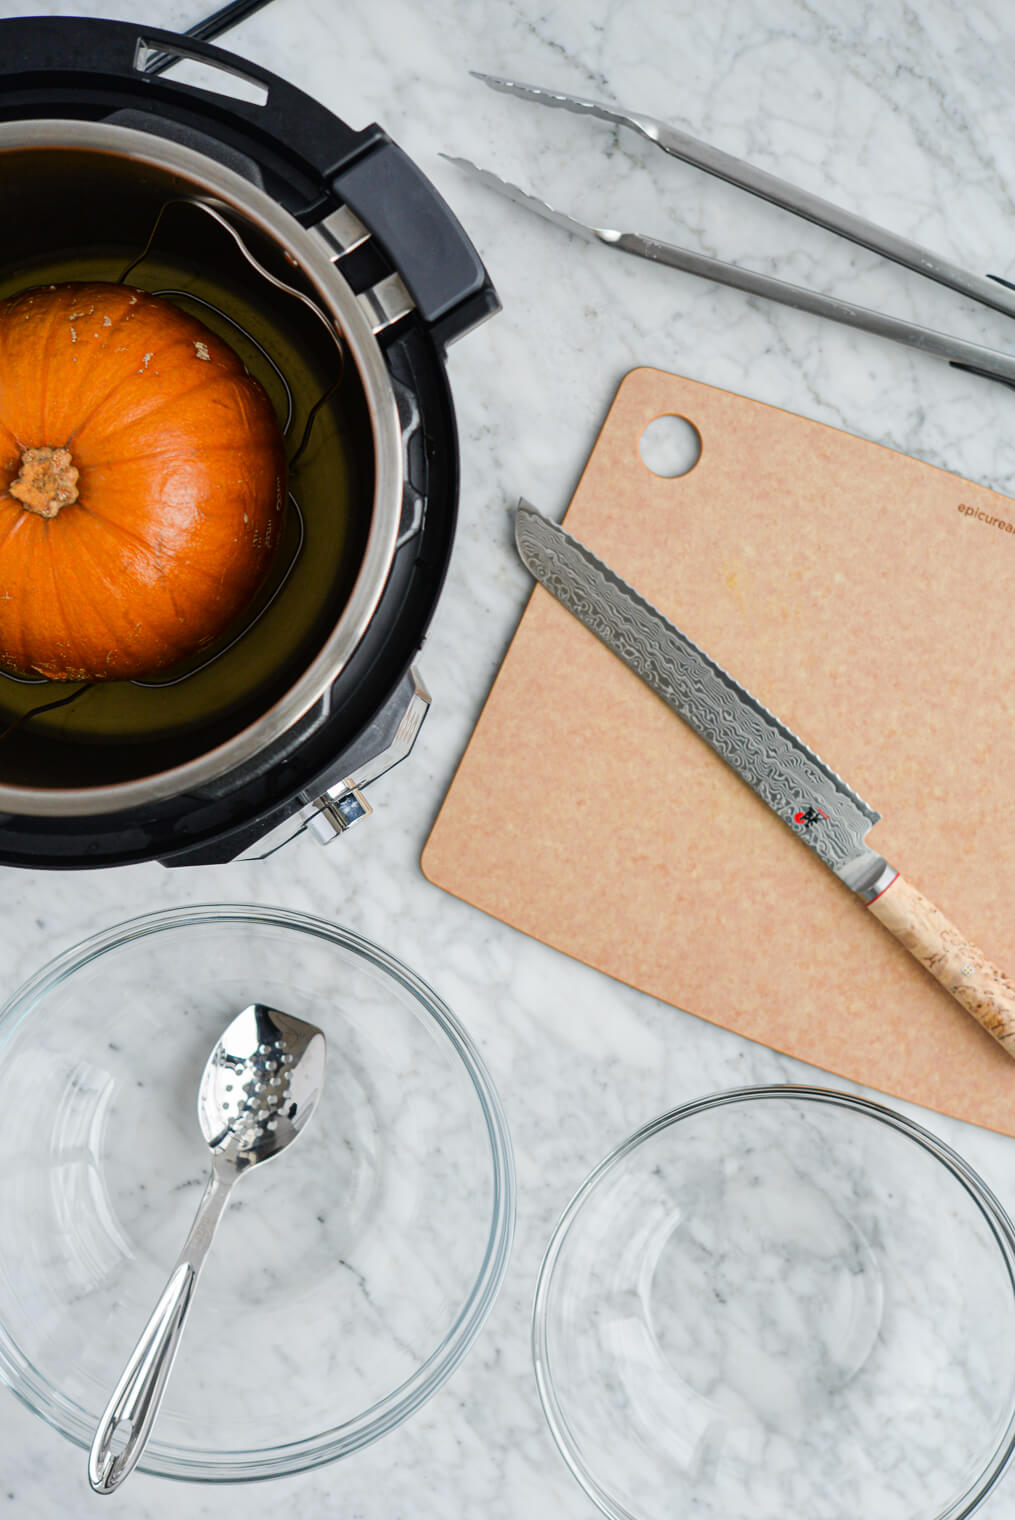 the top view of a baking pumpkin sitting in an open instant pot, a cutting board with a knife on top of it, two clear glass bowls, and one blunt-nose spoon, all sitting on a marble surface